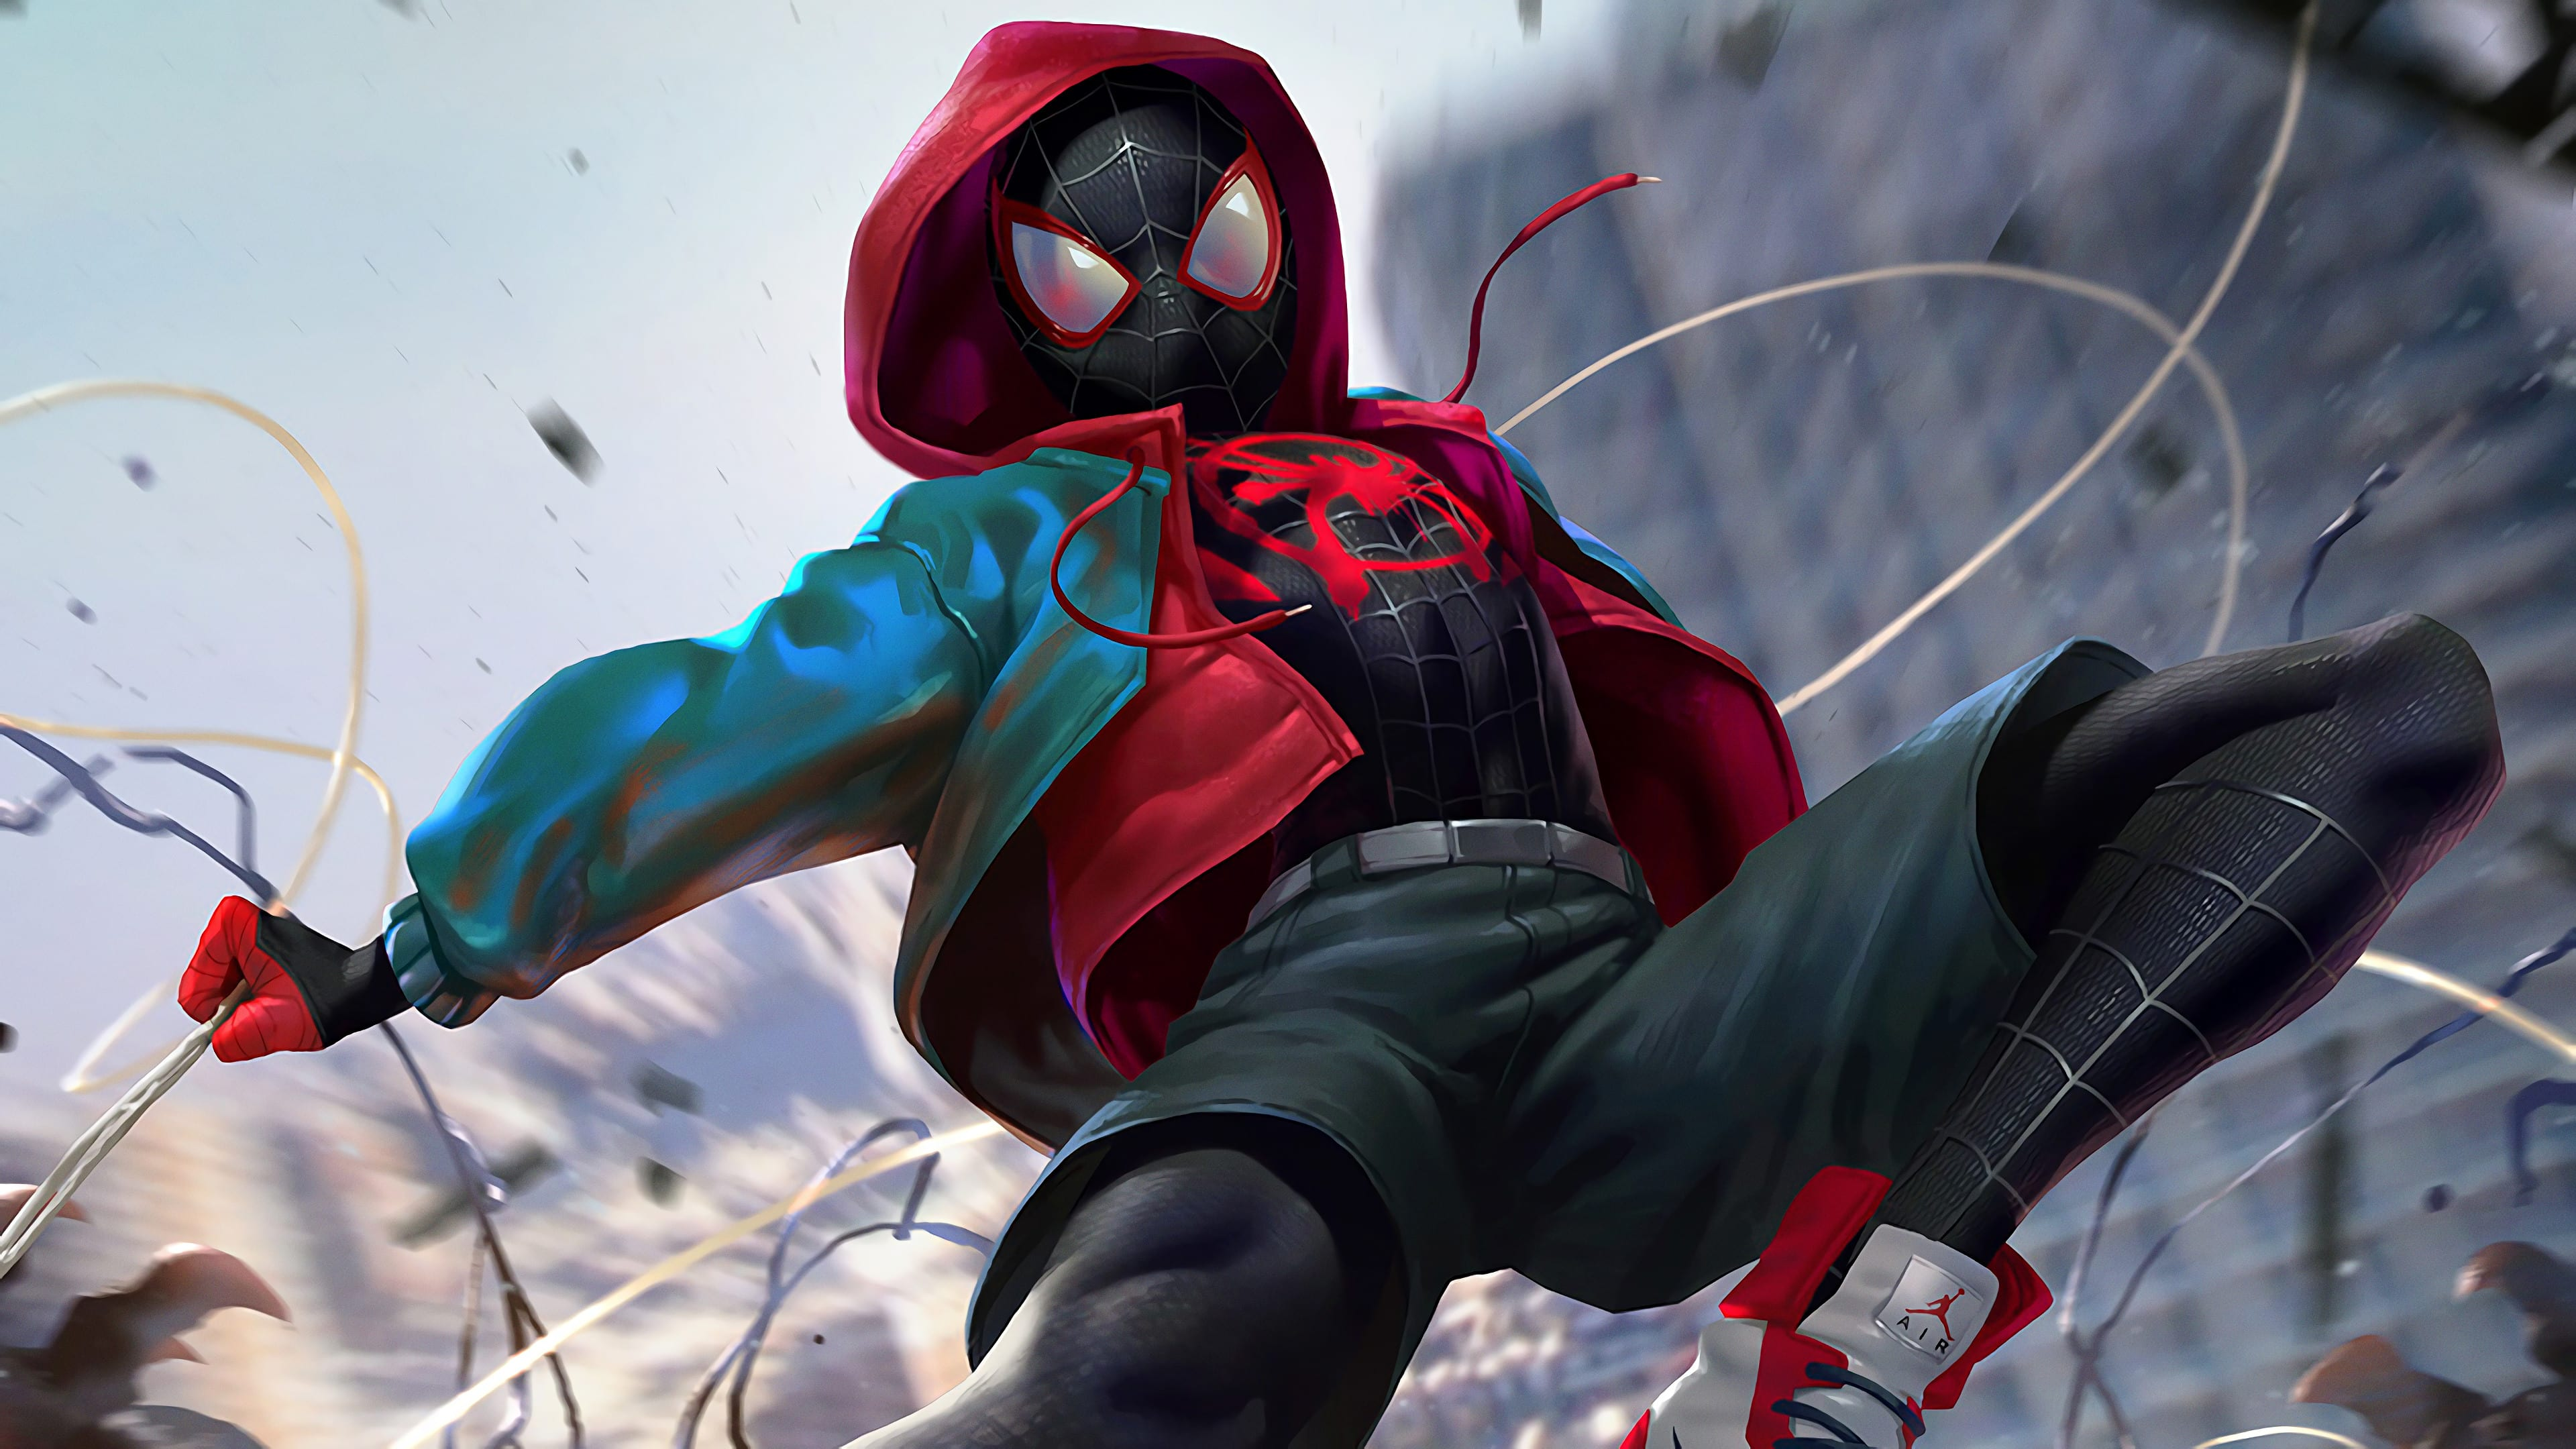 First look miles morales the spider man from brooklyn - New spiderman movie wallpaper ...